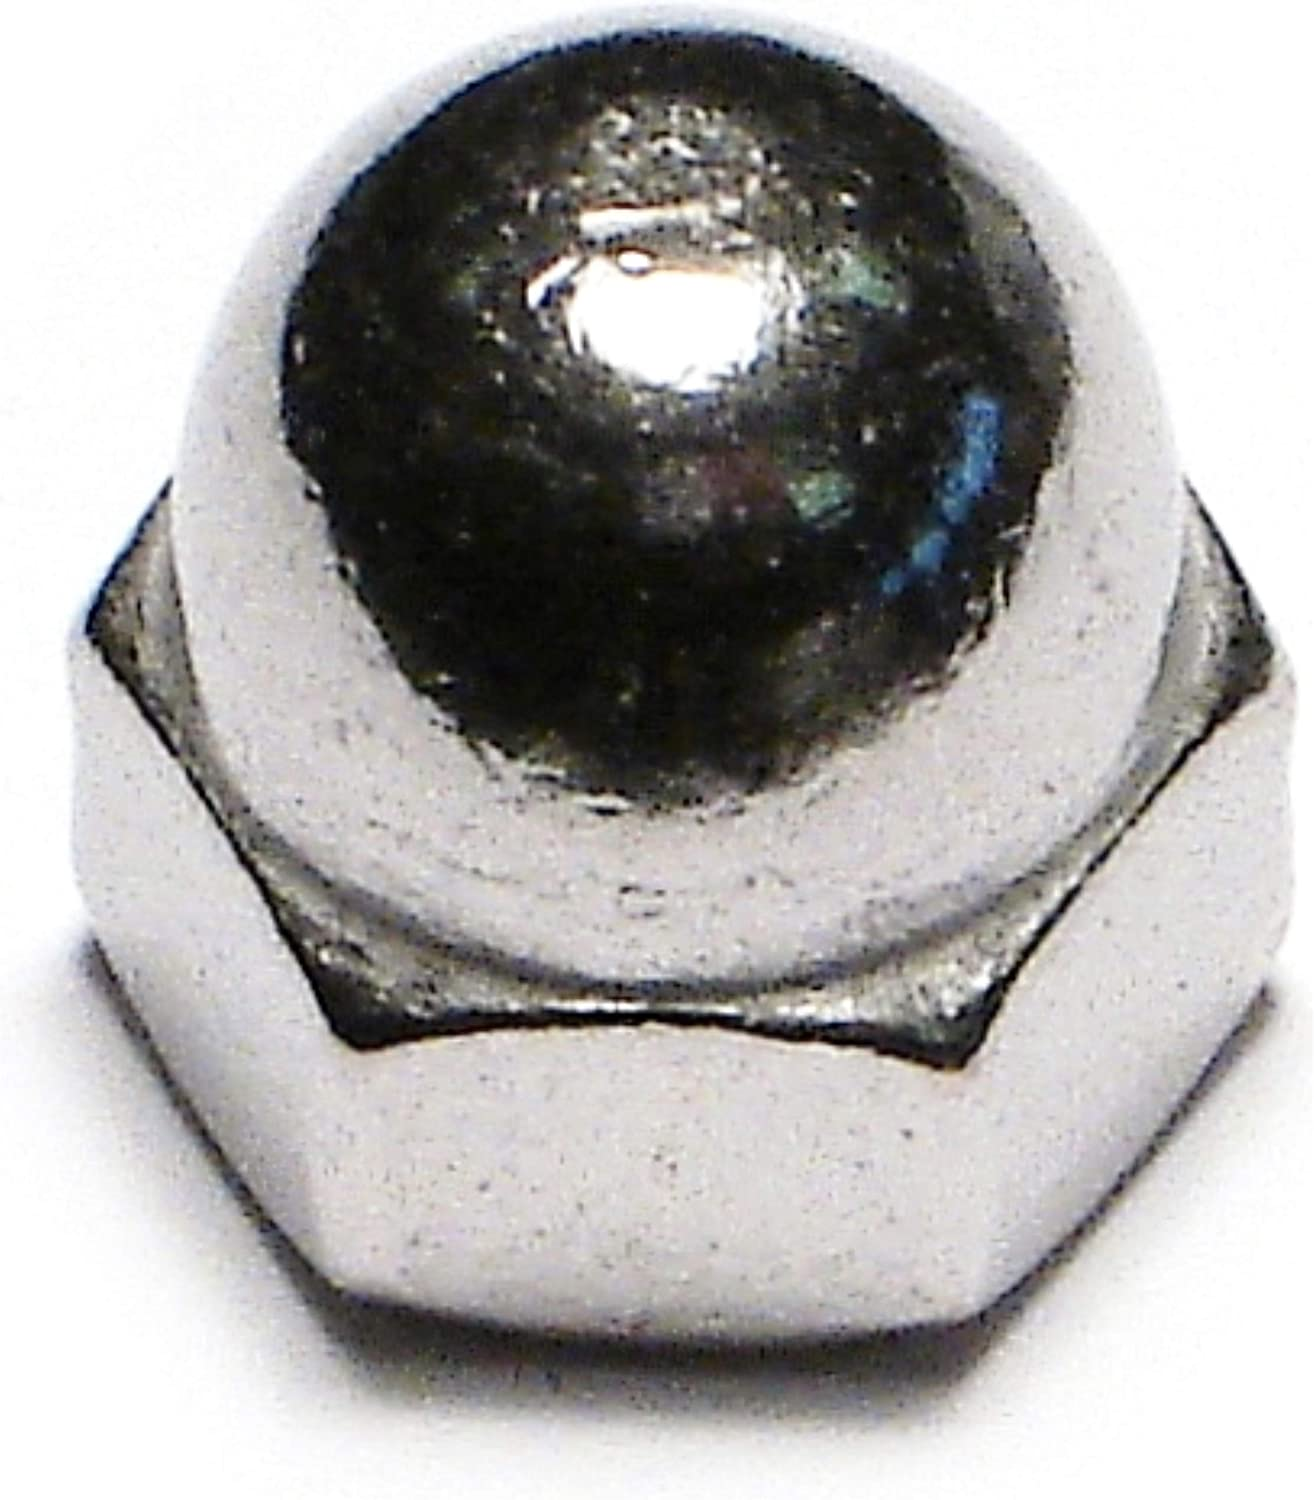 Hard-to-Find Fastener 014973435493 Acorn Nuts 1//4-20 Piece-8 Midwest Fastener Corp